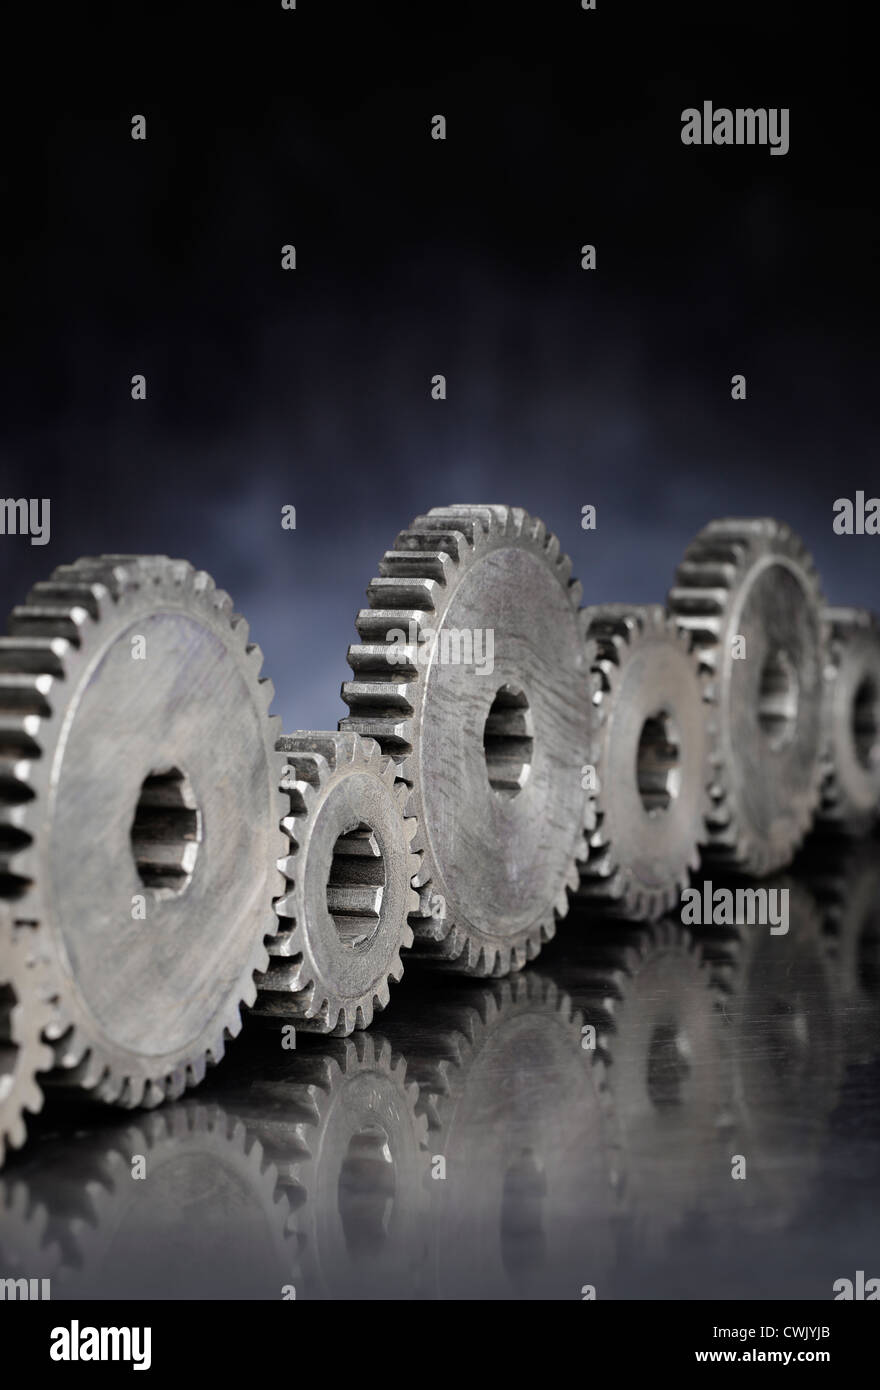 Old metallic cog gears in a row. - Stock Image